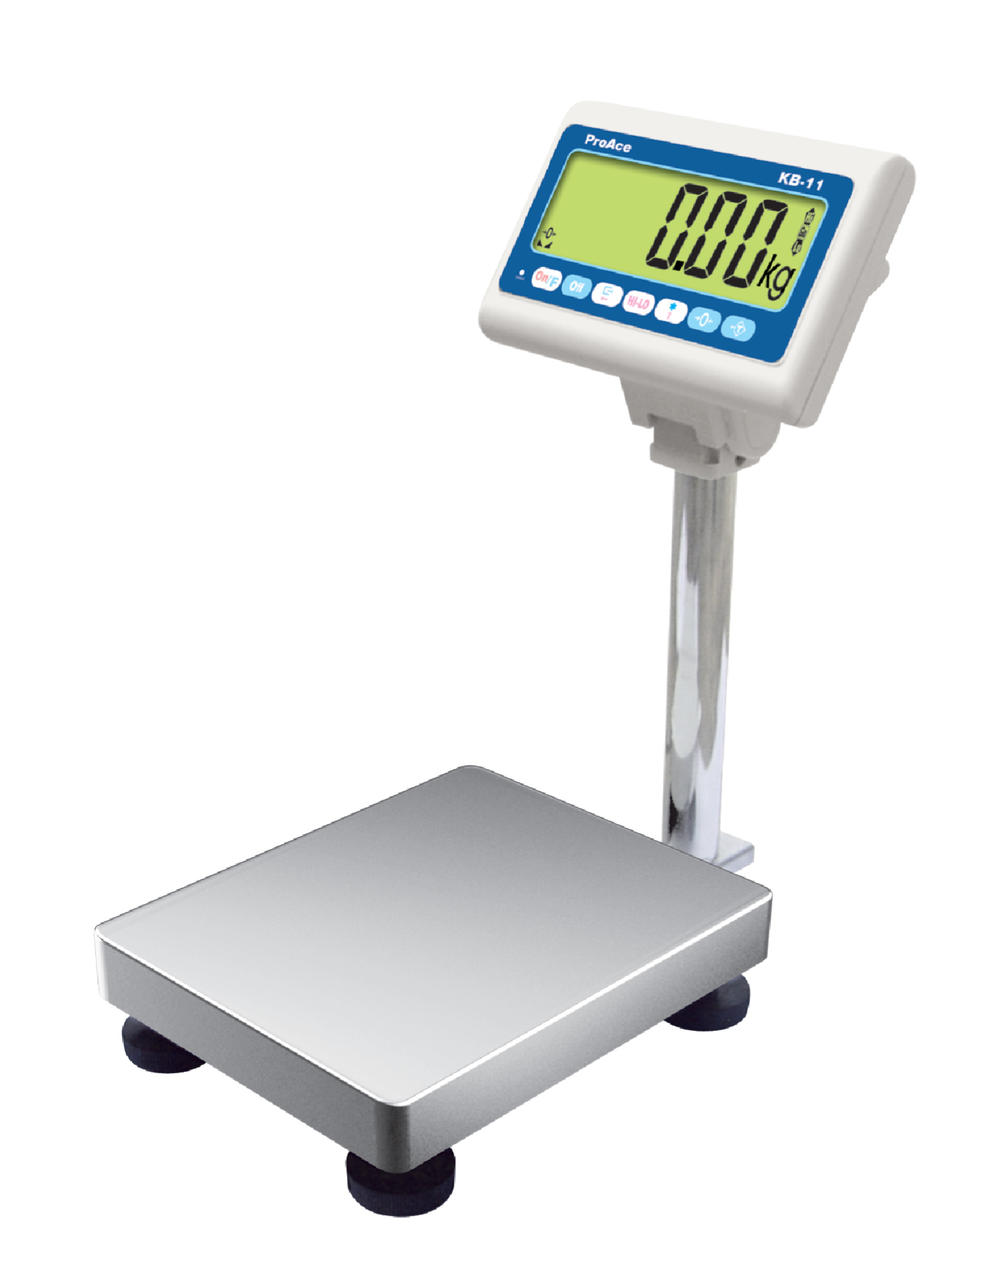 KB-11 (S) series_High Precision Platform Scale